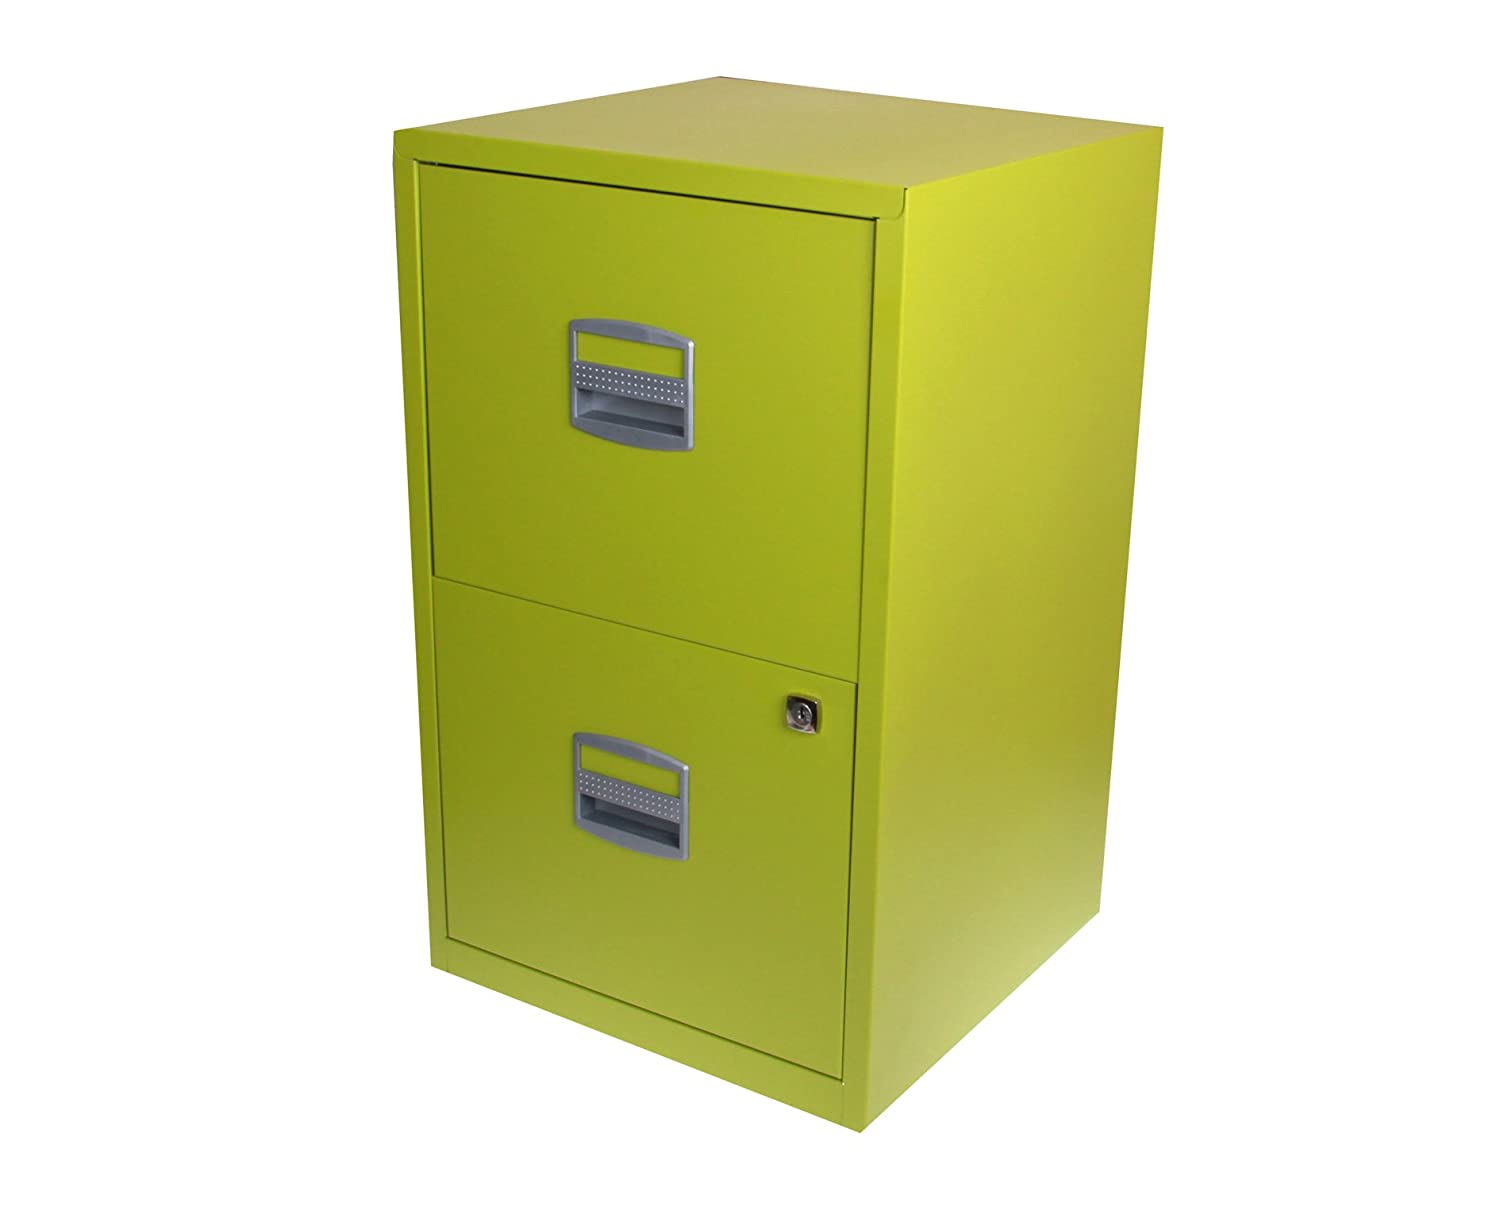 Bisley Filing Cabinet 3 Drawers A4 H672xW413xD400mm Steel Black:  Amazon.co.uk: Kitchen U0026 Home